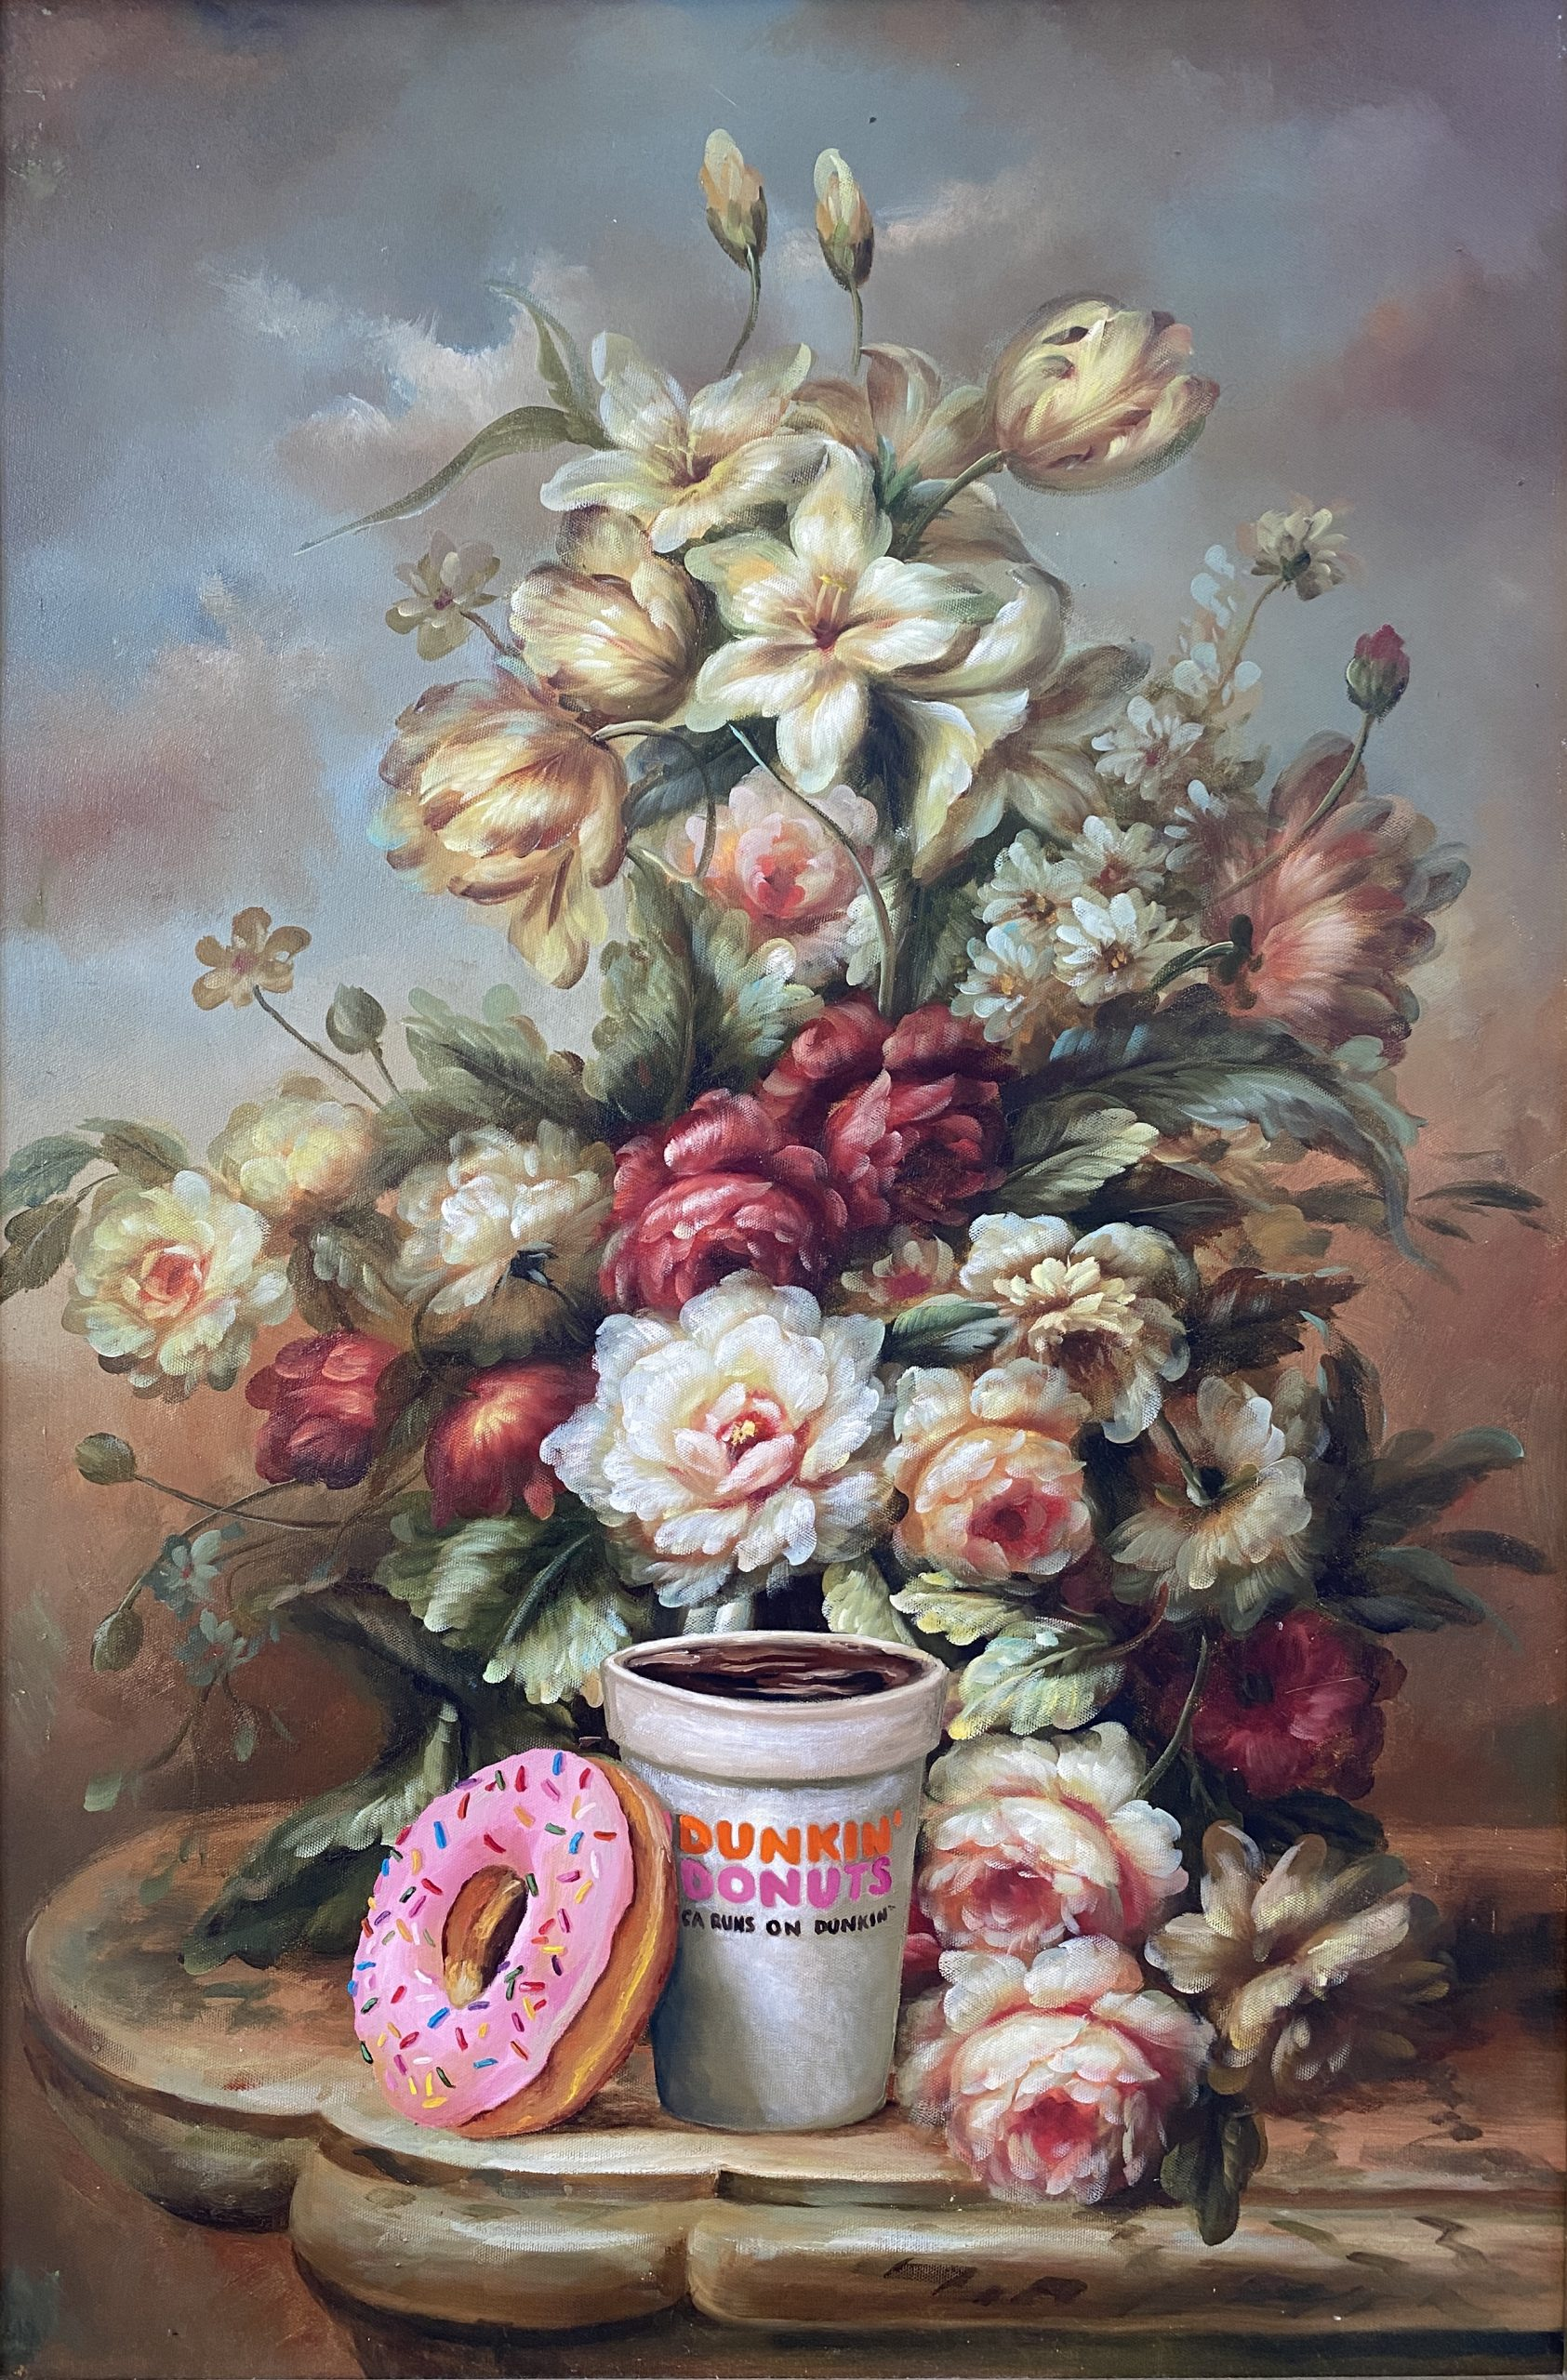 Calorie Composition 4 (Dunkin Donuts) by Dave Pollot